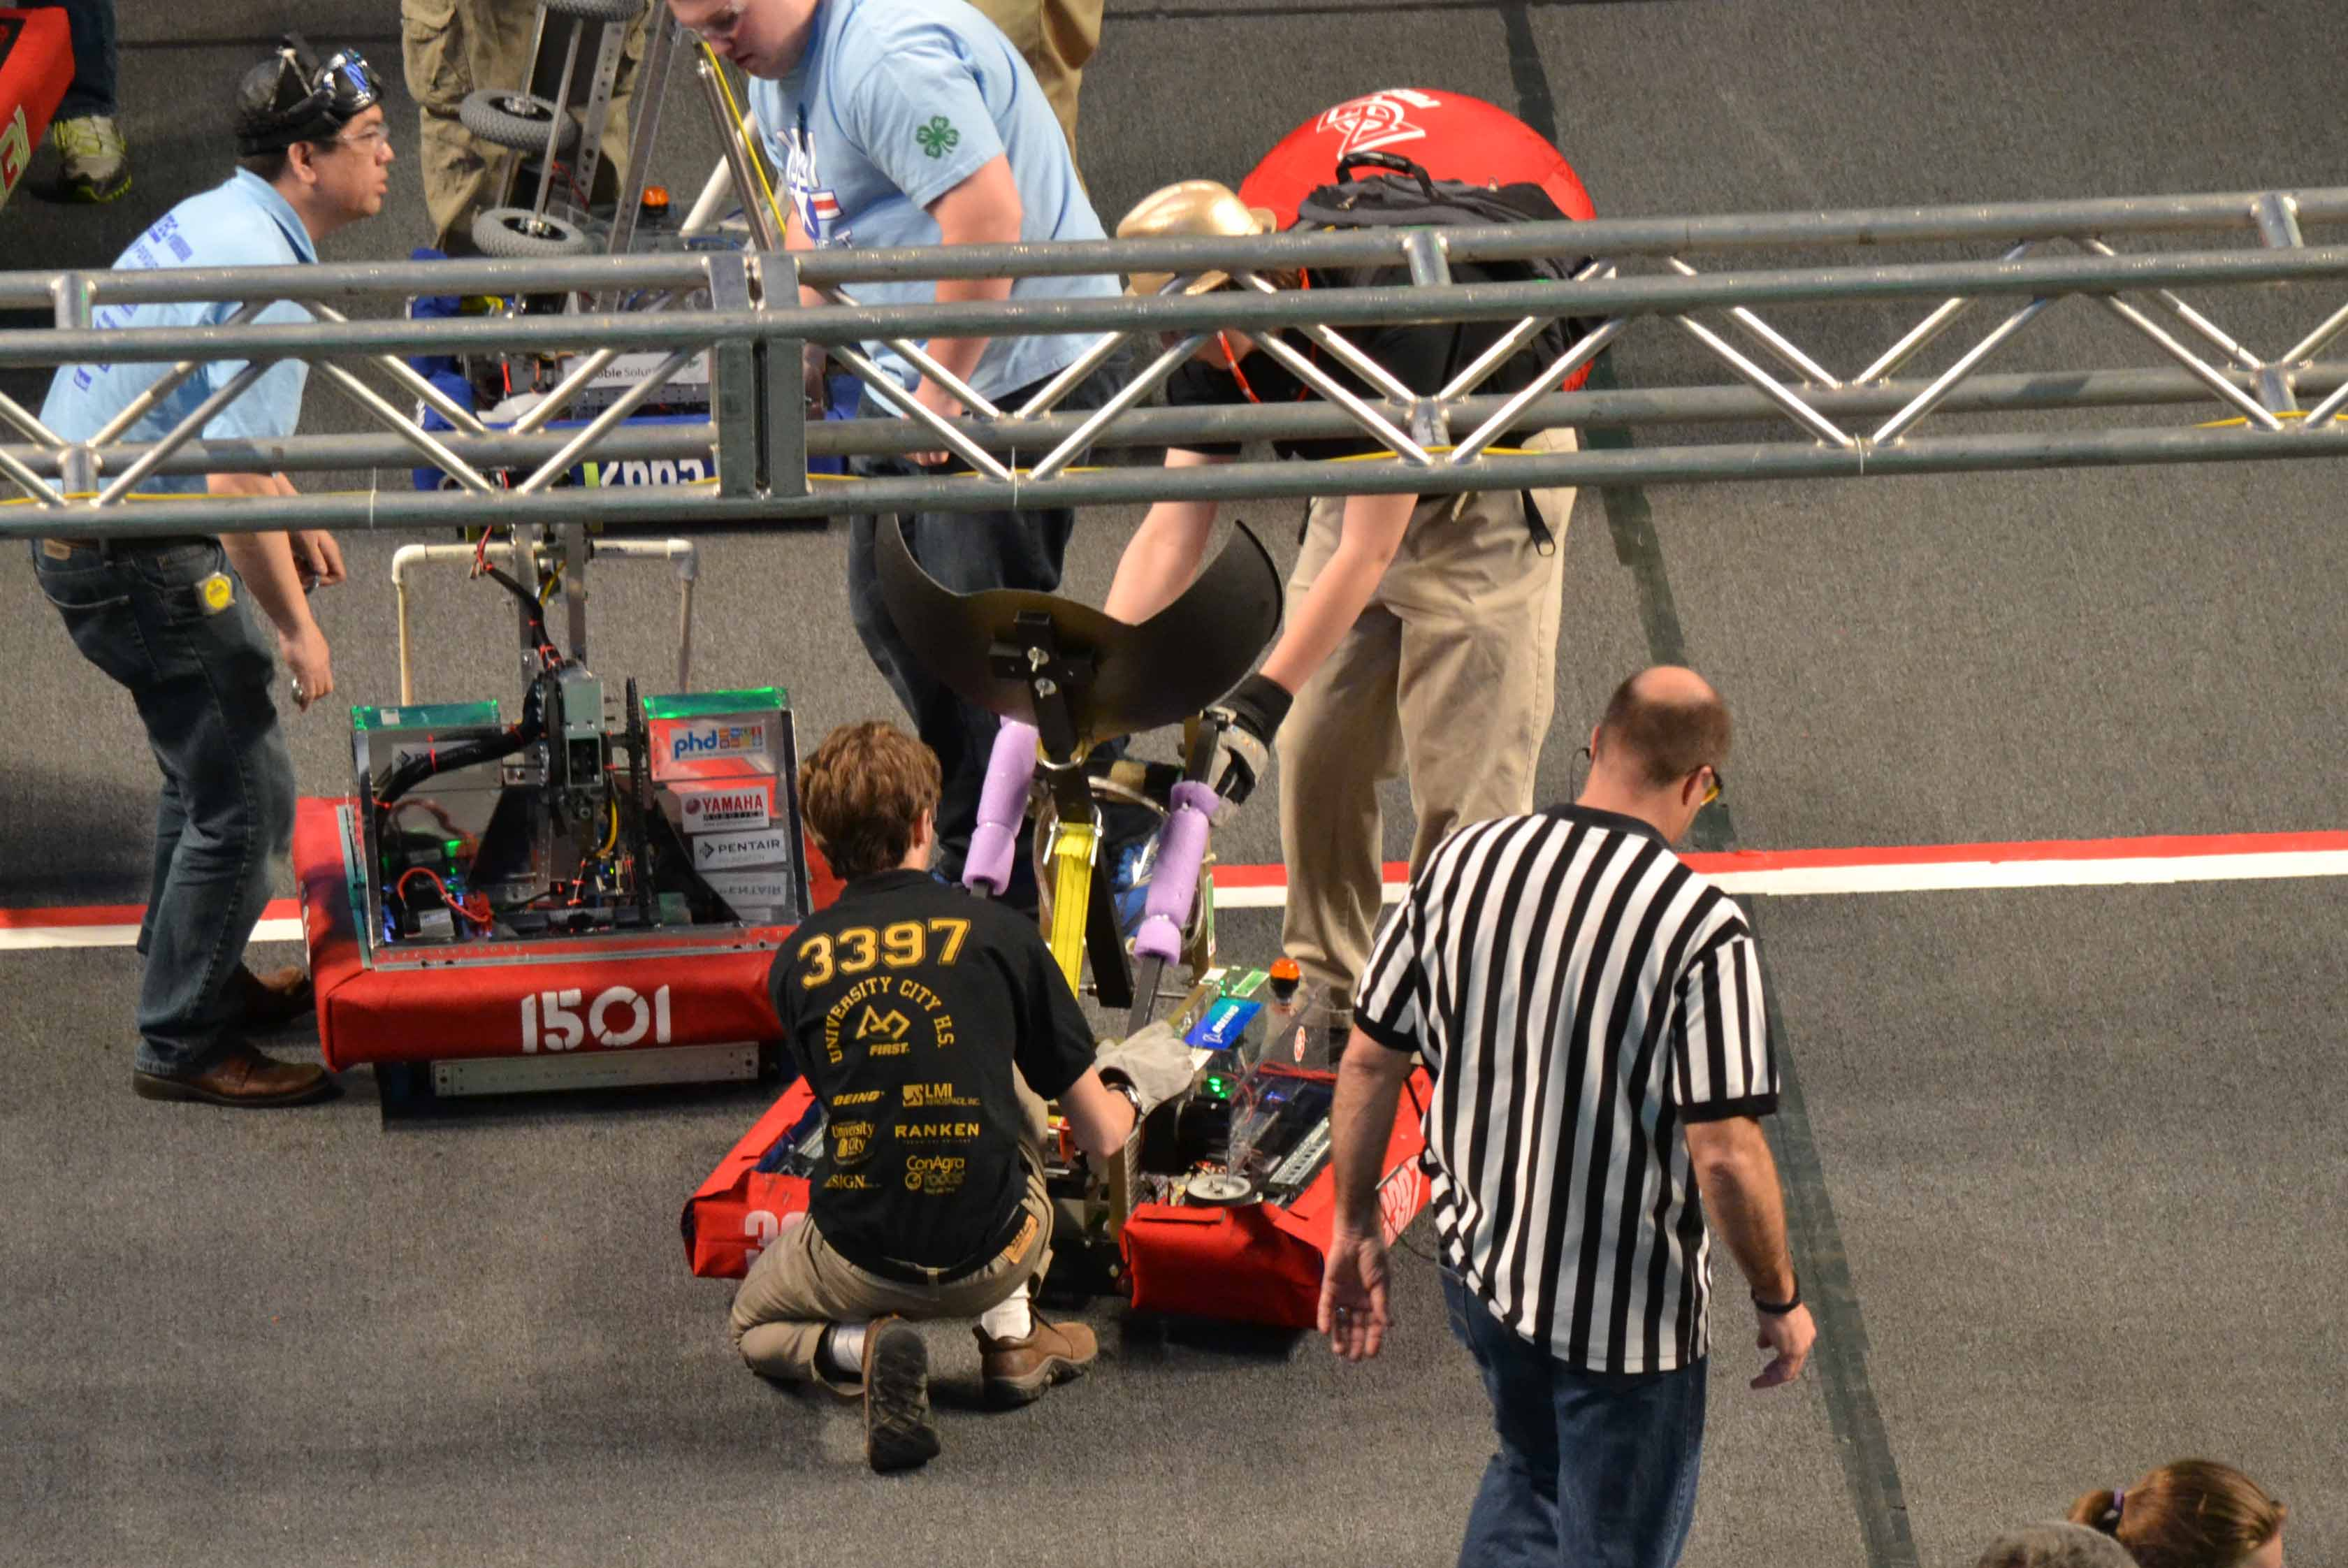 Joshua Stueck, driver and programmer, and Walter Deitzler, captain, set up the robot before a match.